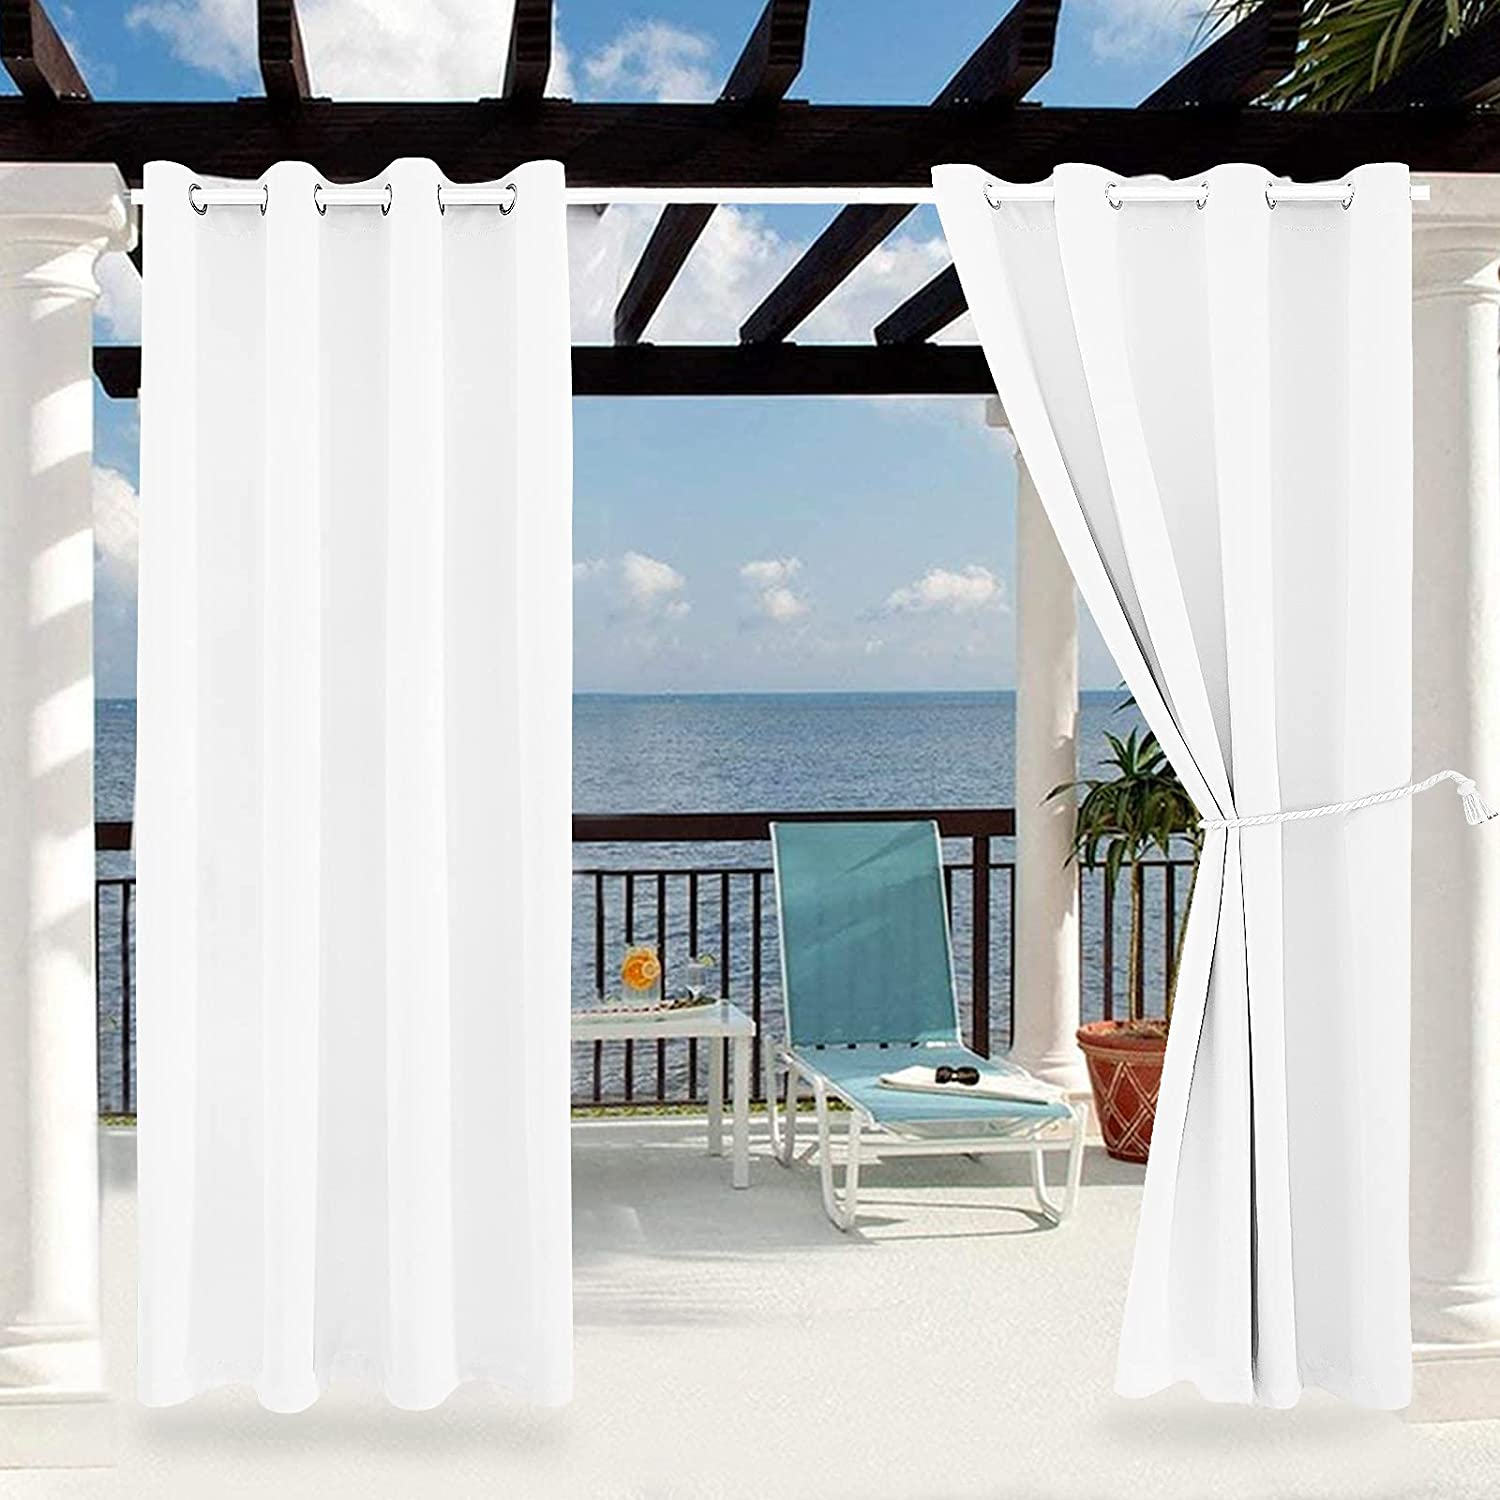 Outdoor Indoor Curtains Max 52% OFF W52 x - L108 Max 48% OFF Weather-Resistant Patio for